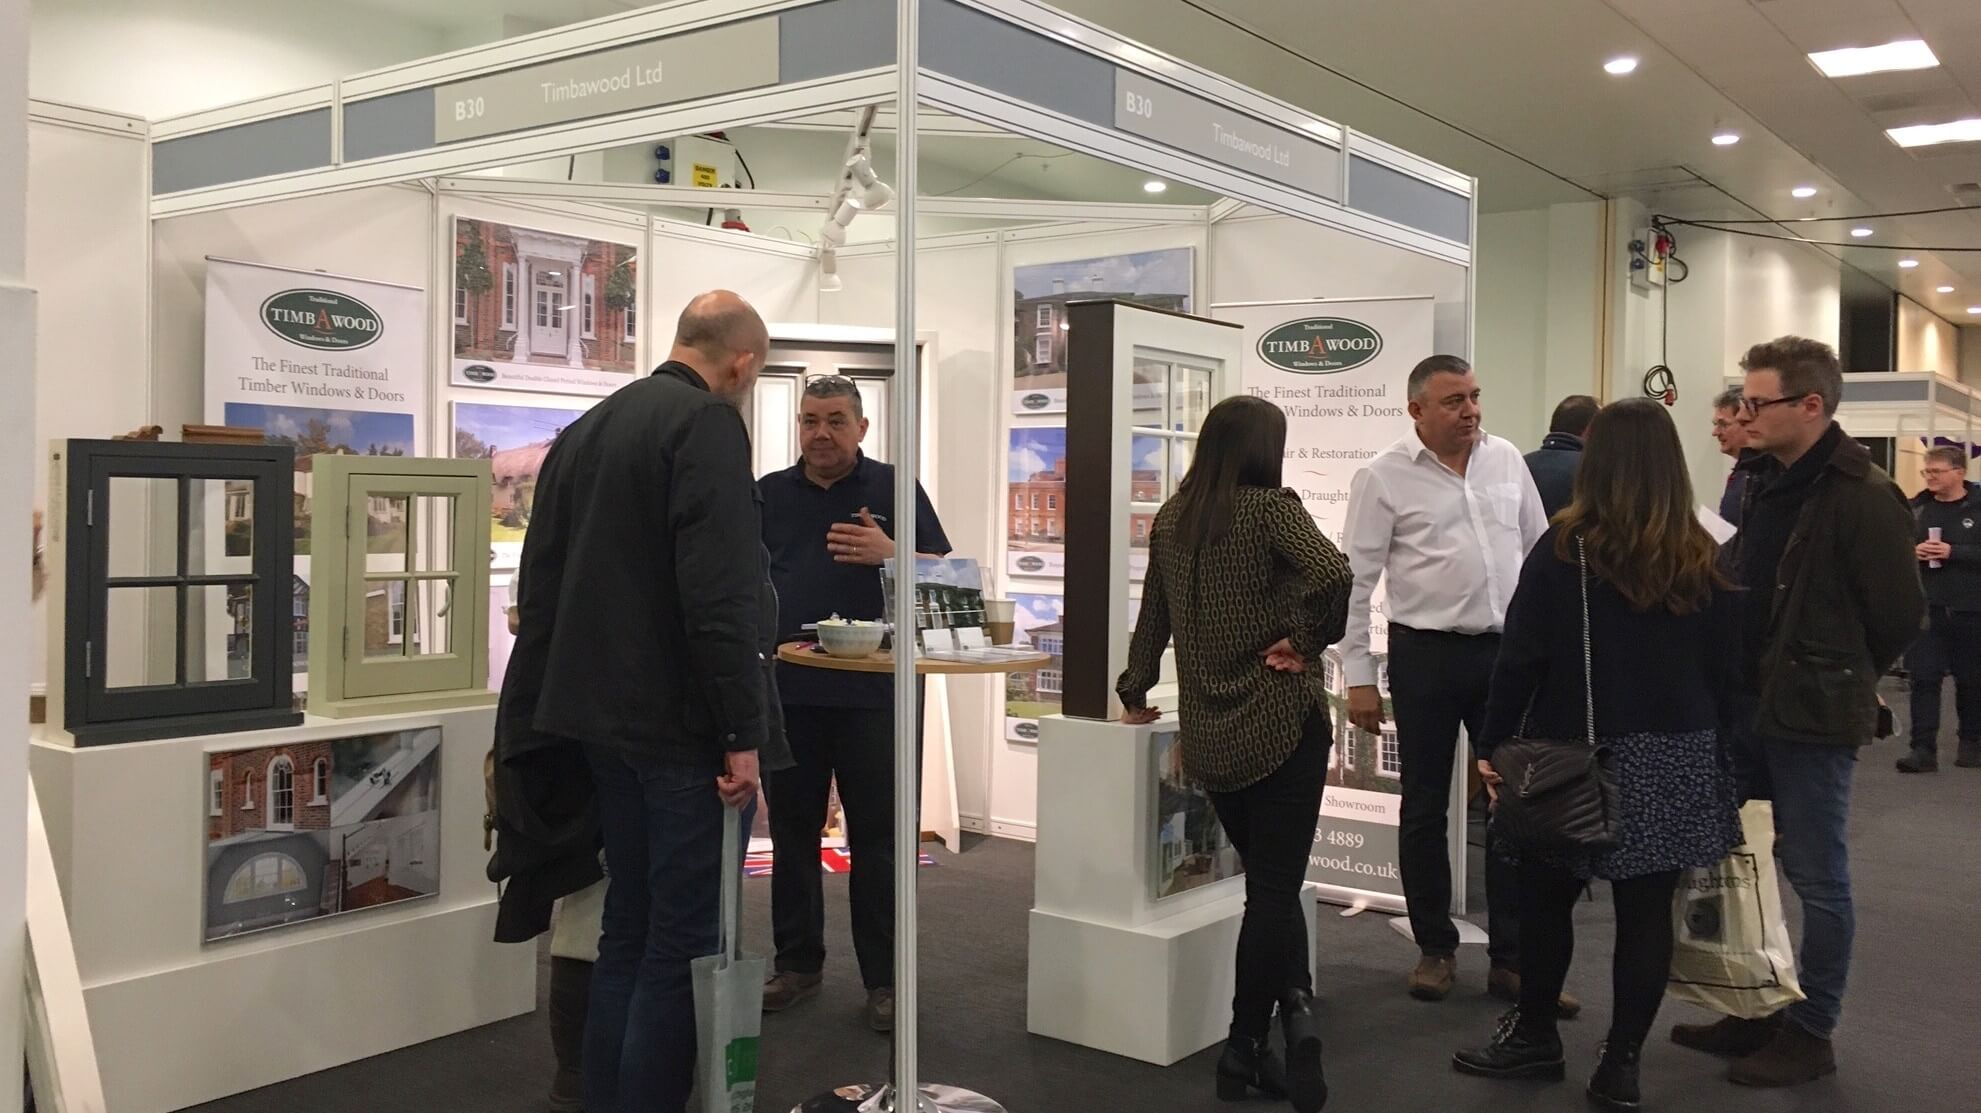 Listed Property Show 2020